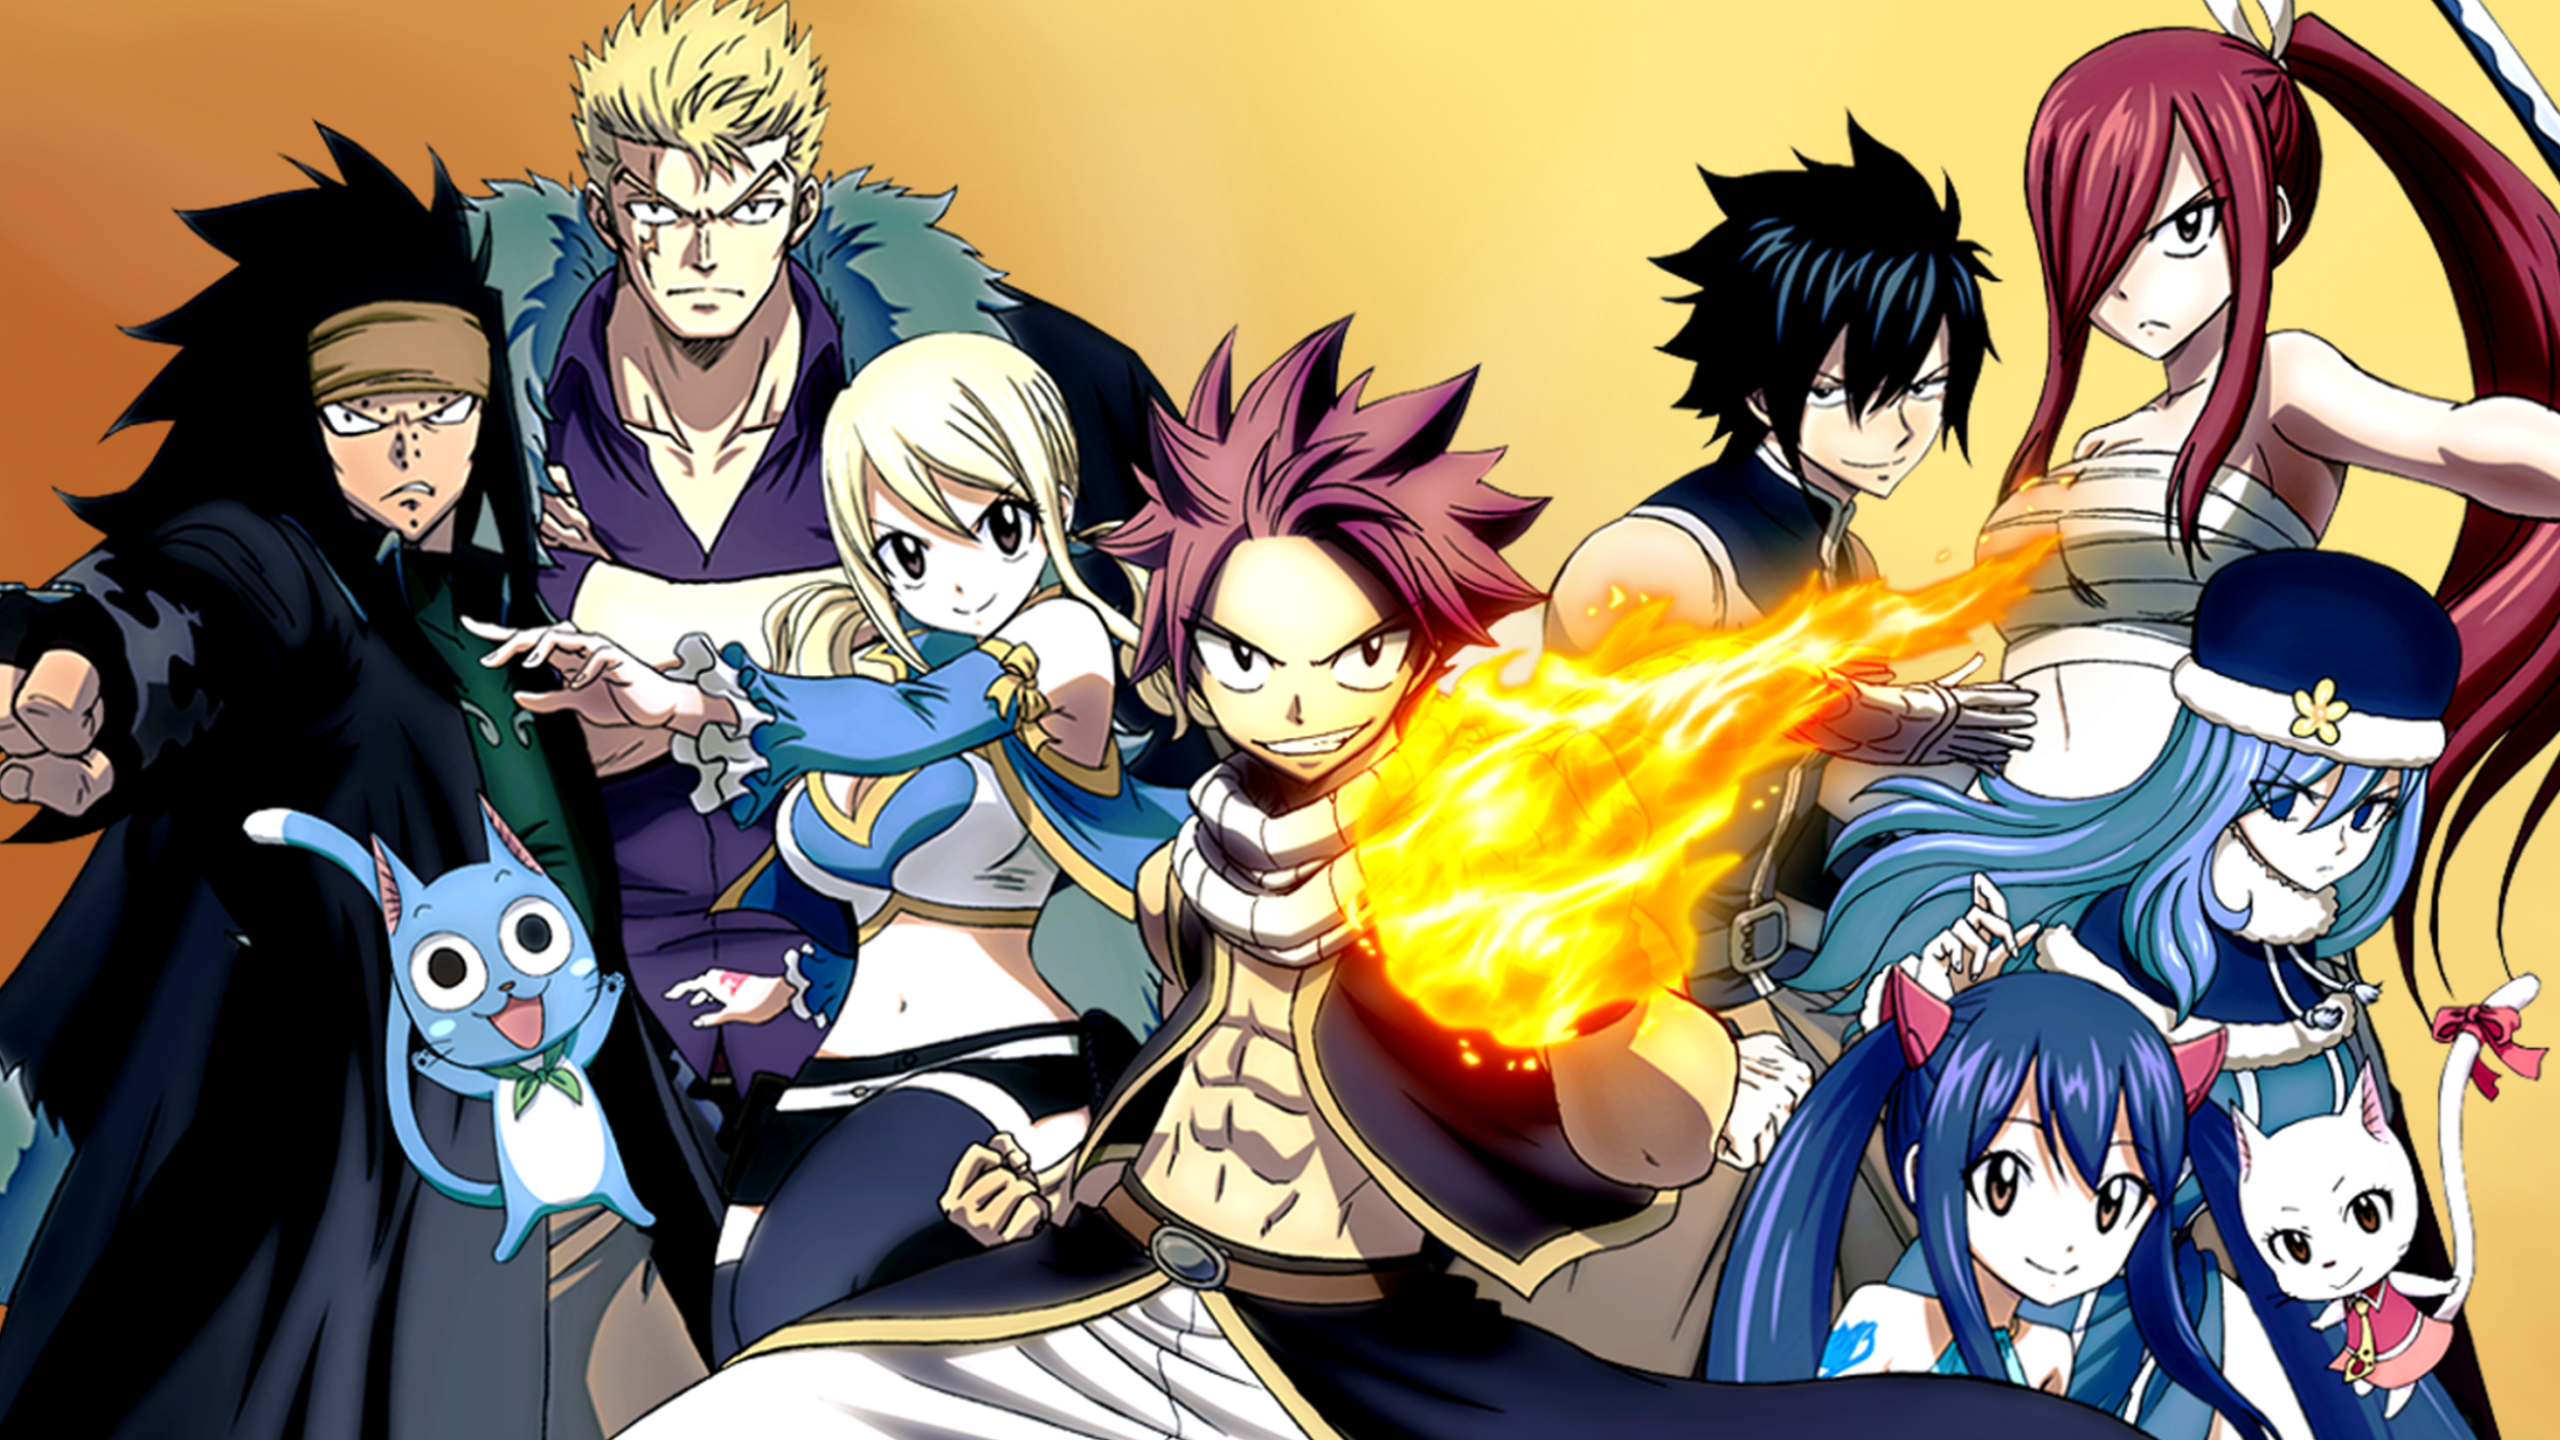 Fairy Tail HD Wallpaper | Background Image | 2560x1440 | ID:743737 - Wallpaper Abyss